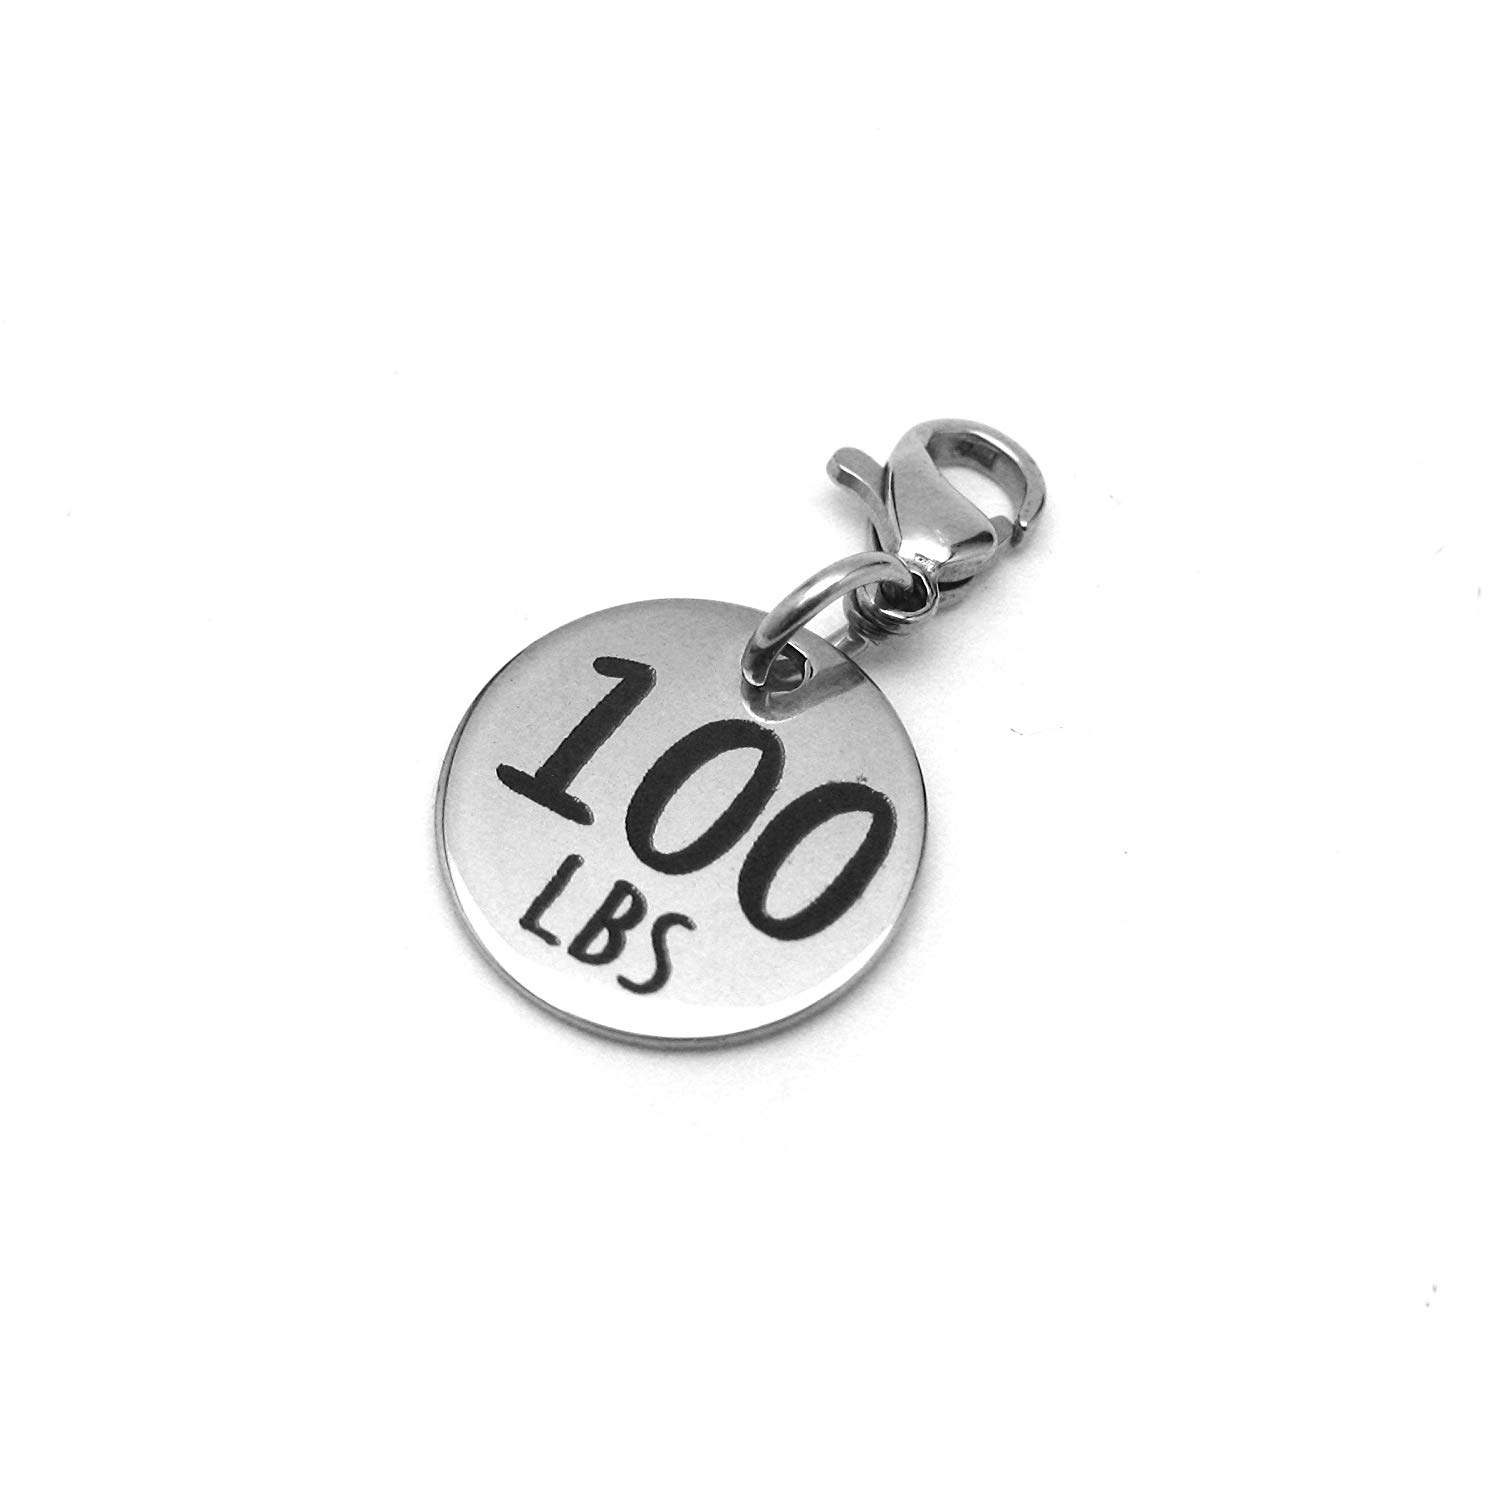 30 lbs Weight Loss Jewelry Charm Motivational and Inspirational Jewelry for Fitness and Workout Motivation for Pounds Lost Stainless Steel Engraved Charm and Clasp Tarnish Free Charms